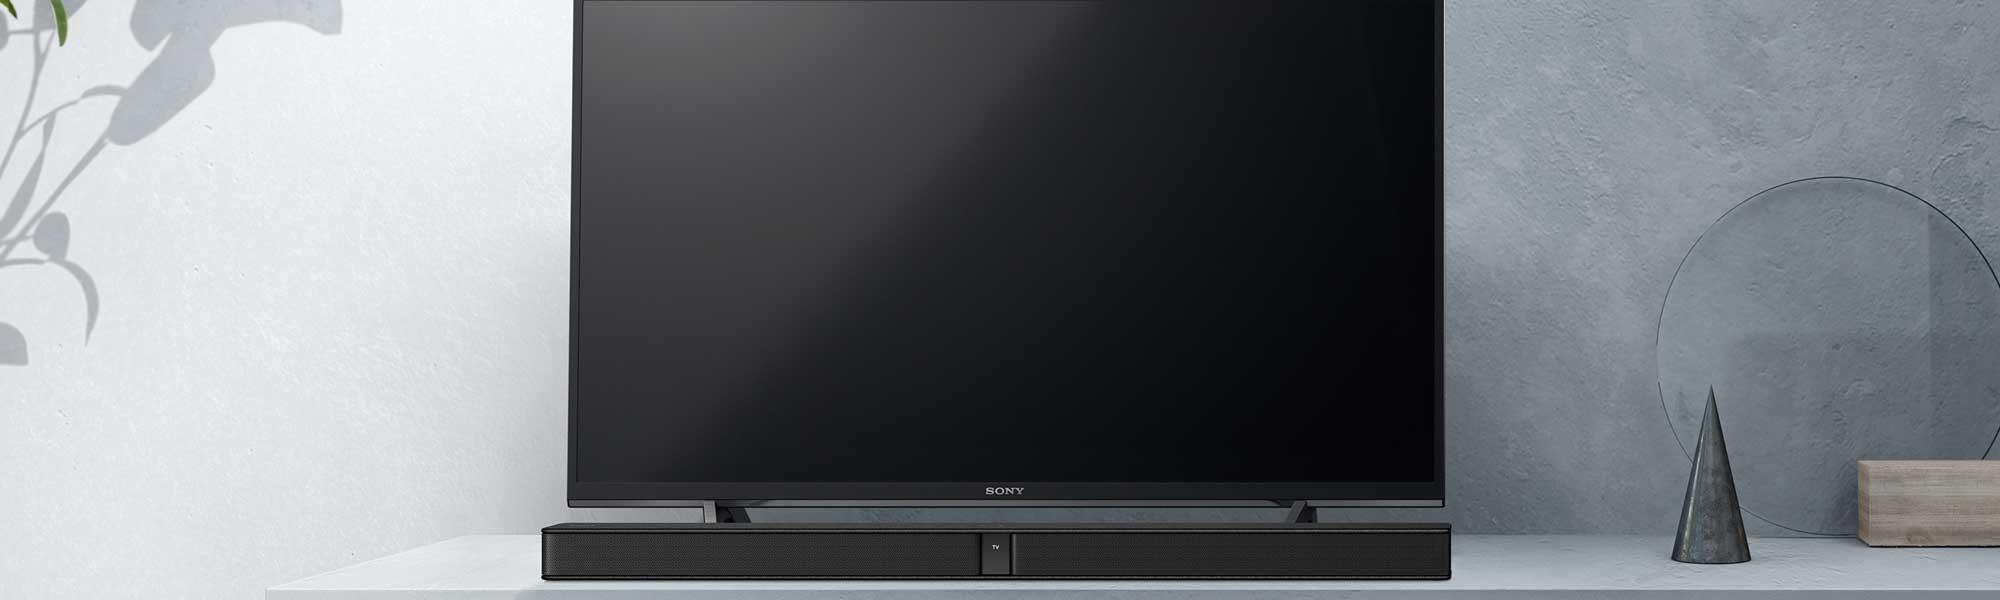 Sony HT-CT290 Sound Bar 2.1 300w Bluetooth